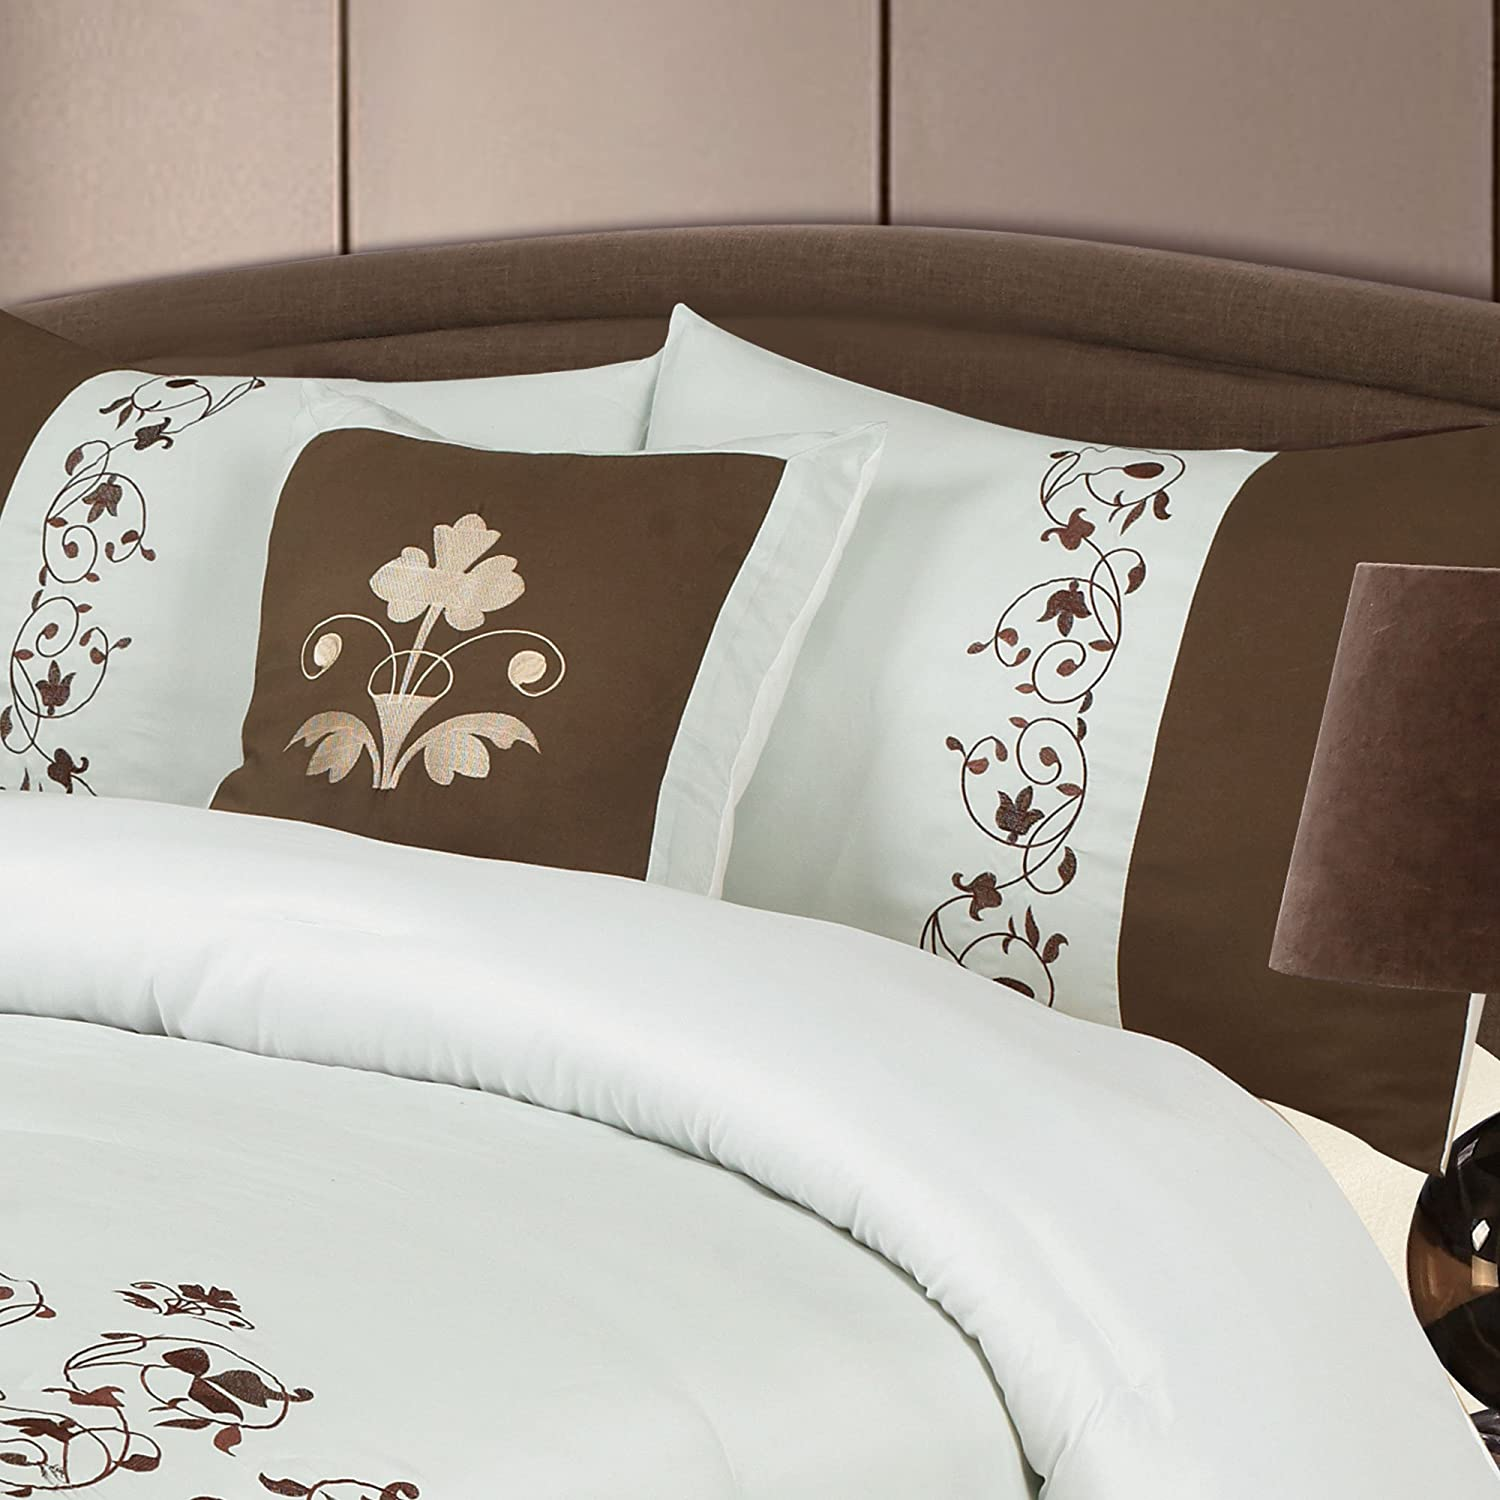 Queen Lavish Home Hannah 7-Piece Embroidered Comforter Set